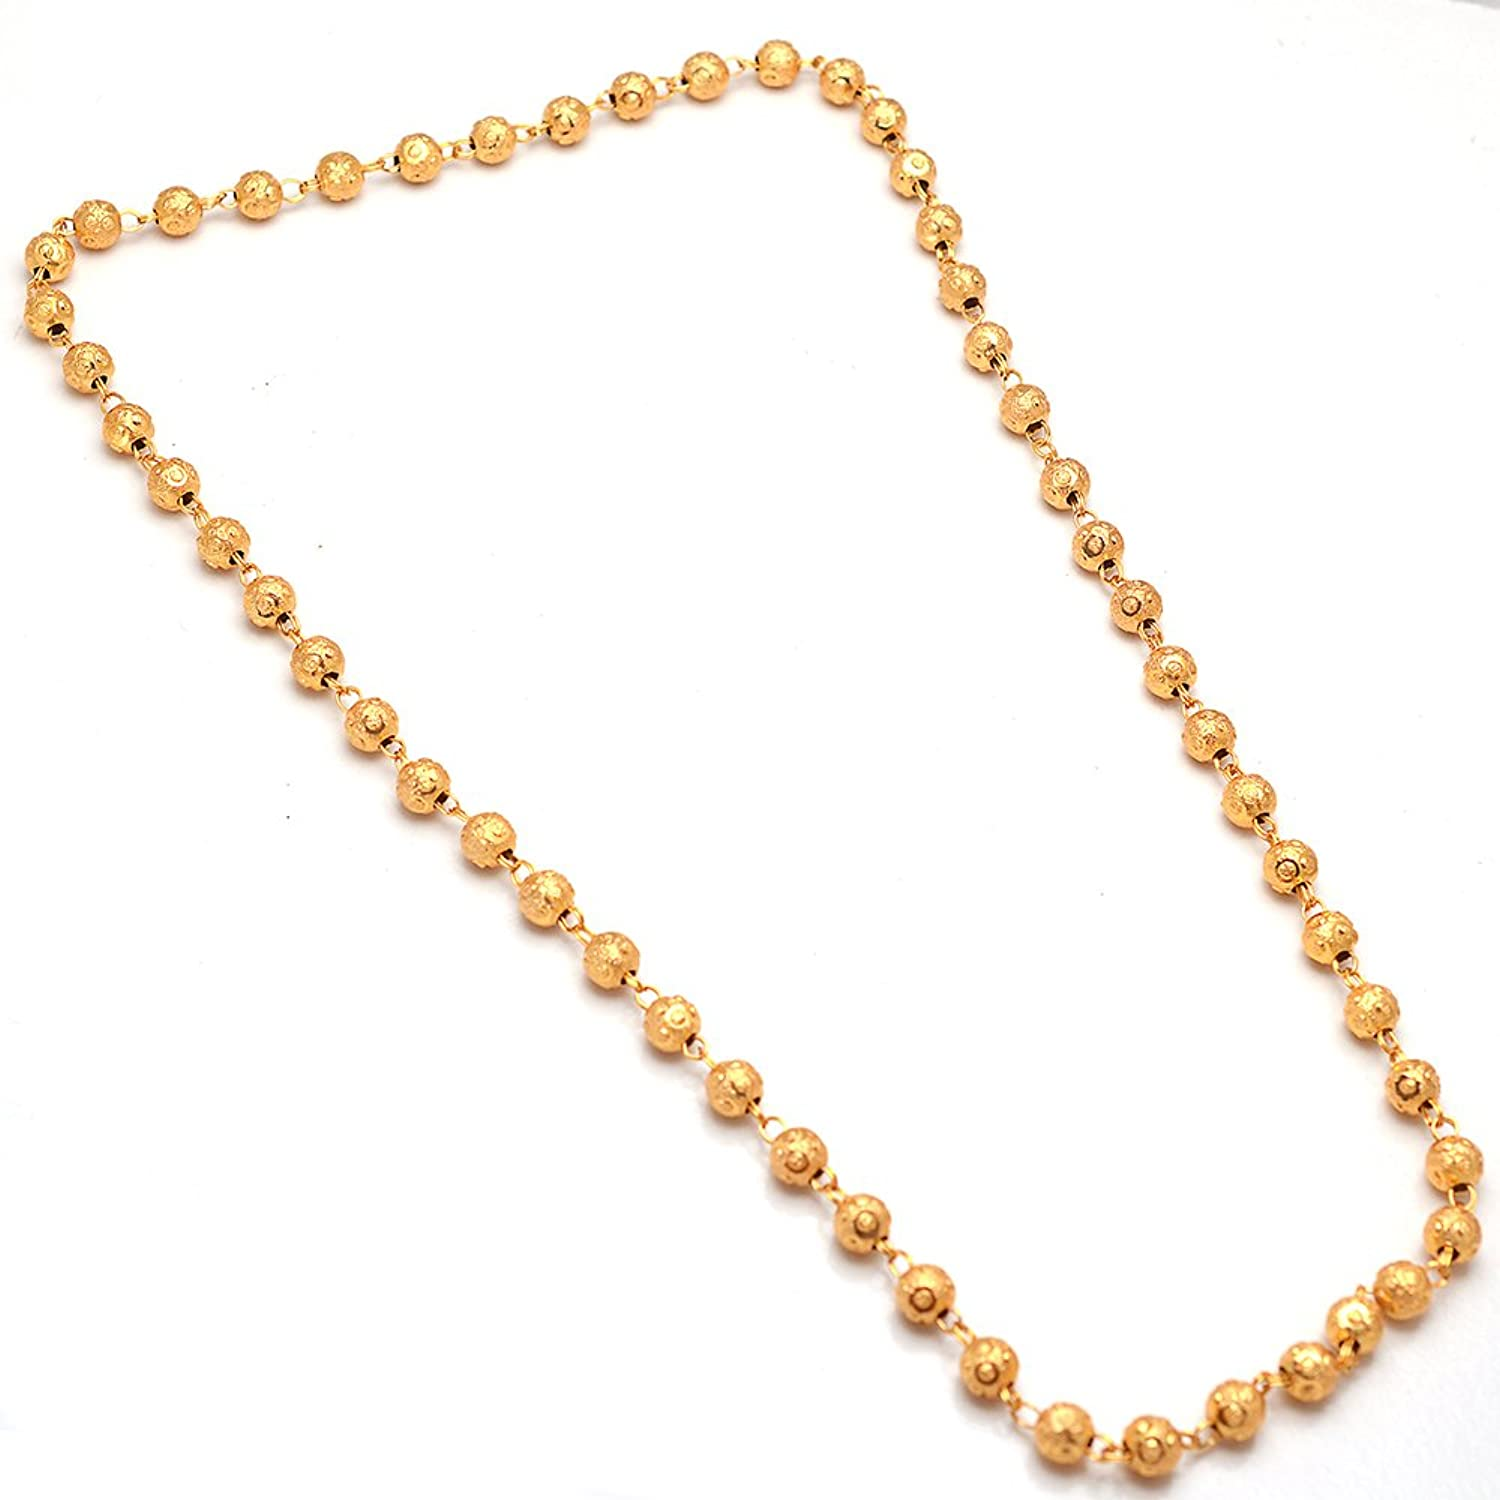 chains necklace natural gold ladies everyday bingefashion ct bridal rrobpkb necklaces certified diamondfestive for the